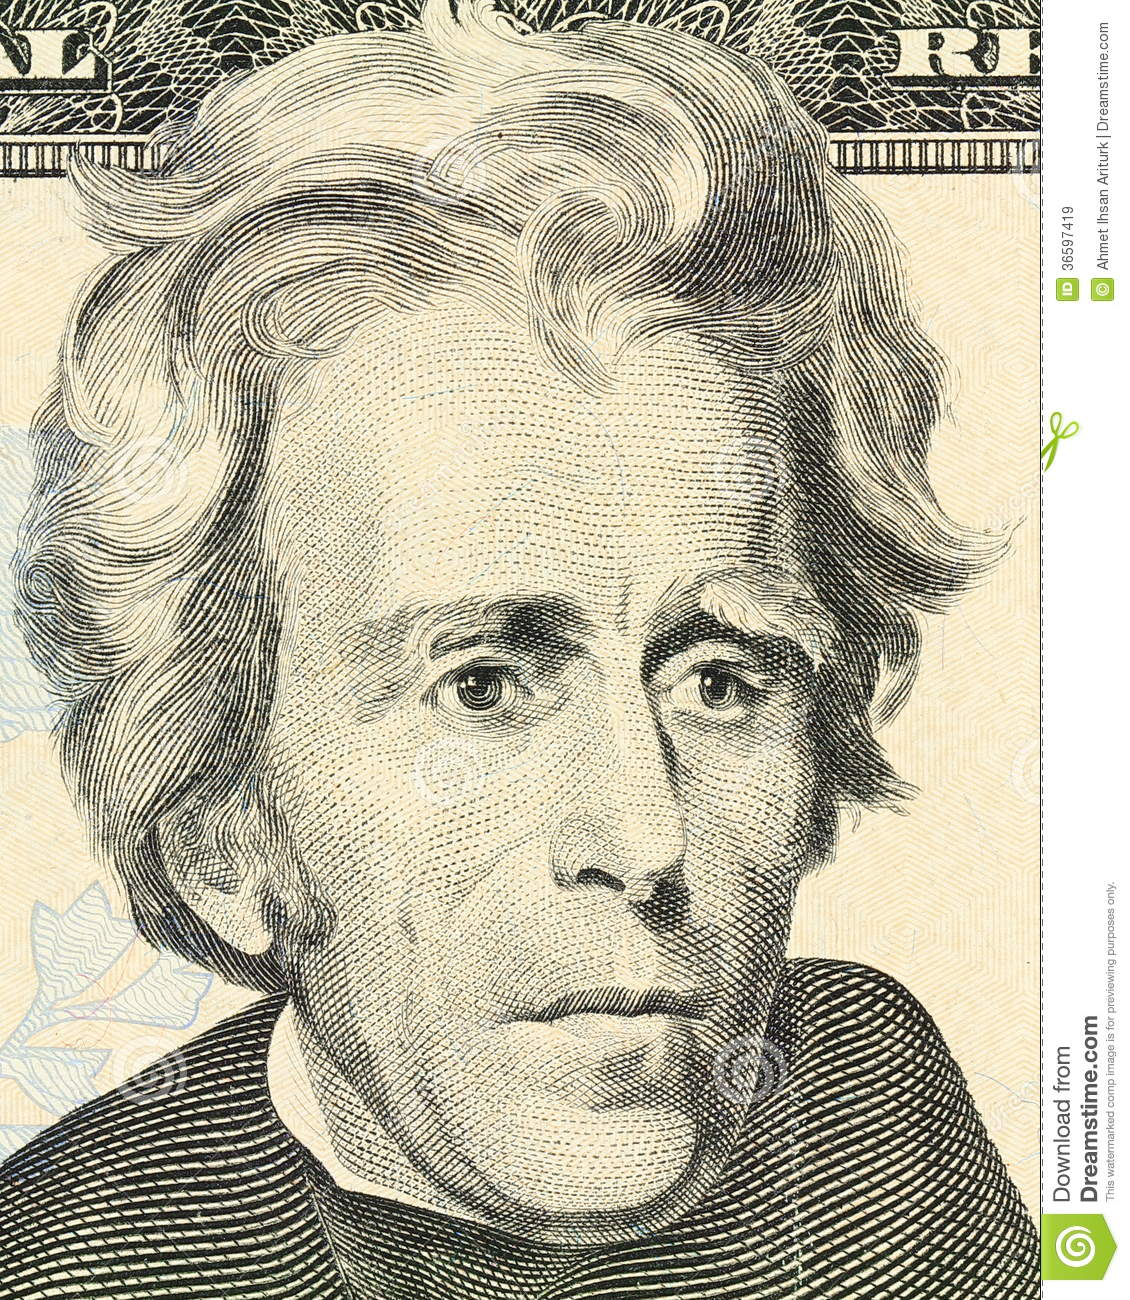 andrew jackson man of the people essay Andrew jackson and his policies strengthened the new american nationalism through his actions during his presidency, he changed the nation into a more nationalistic country jackson was a man of the people, and he strongly felt that the common man was the power behind government.